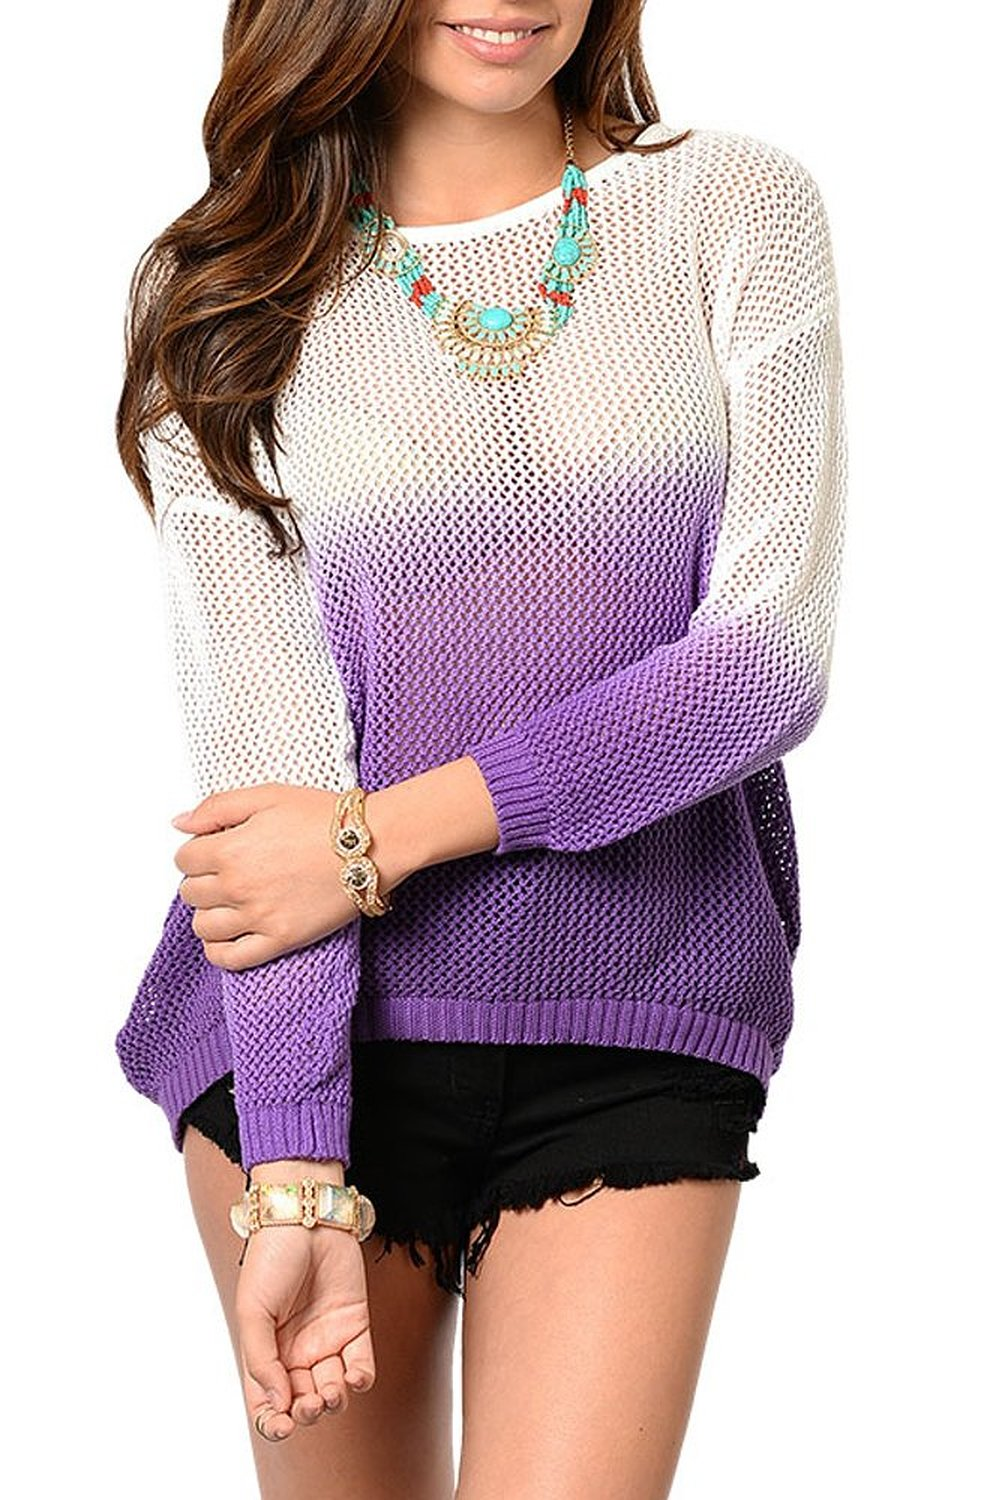 Dhstyles women's trendy sheer ombre knit sweater top at amazon women's clothing store: